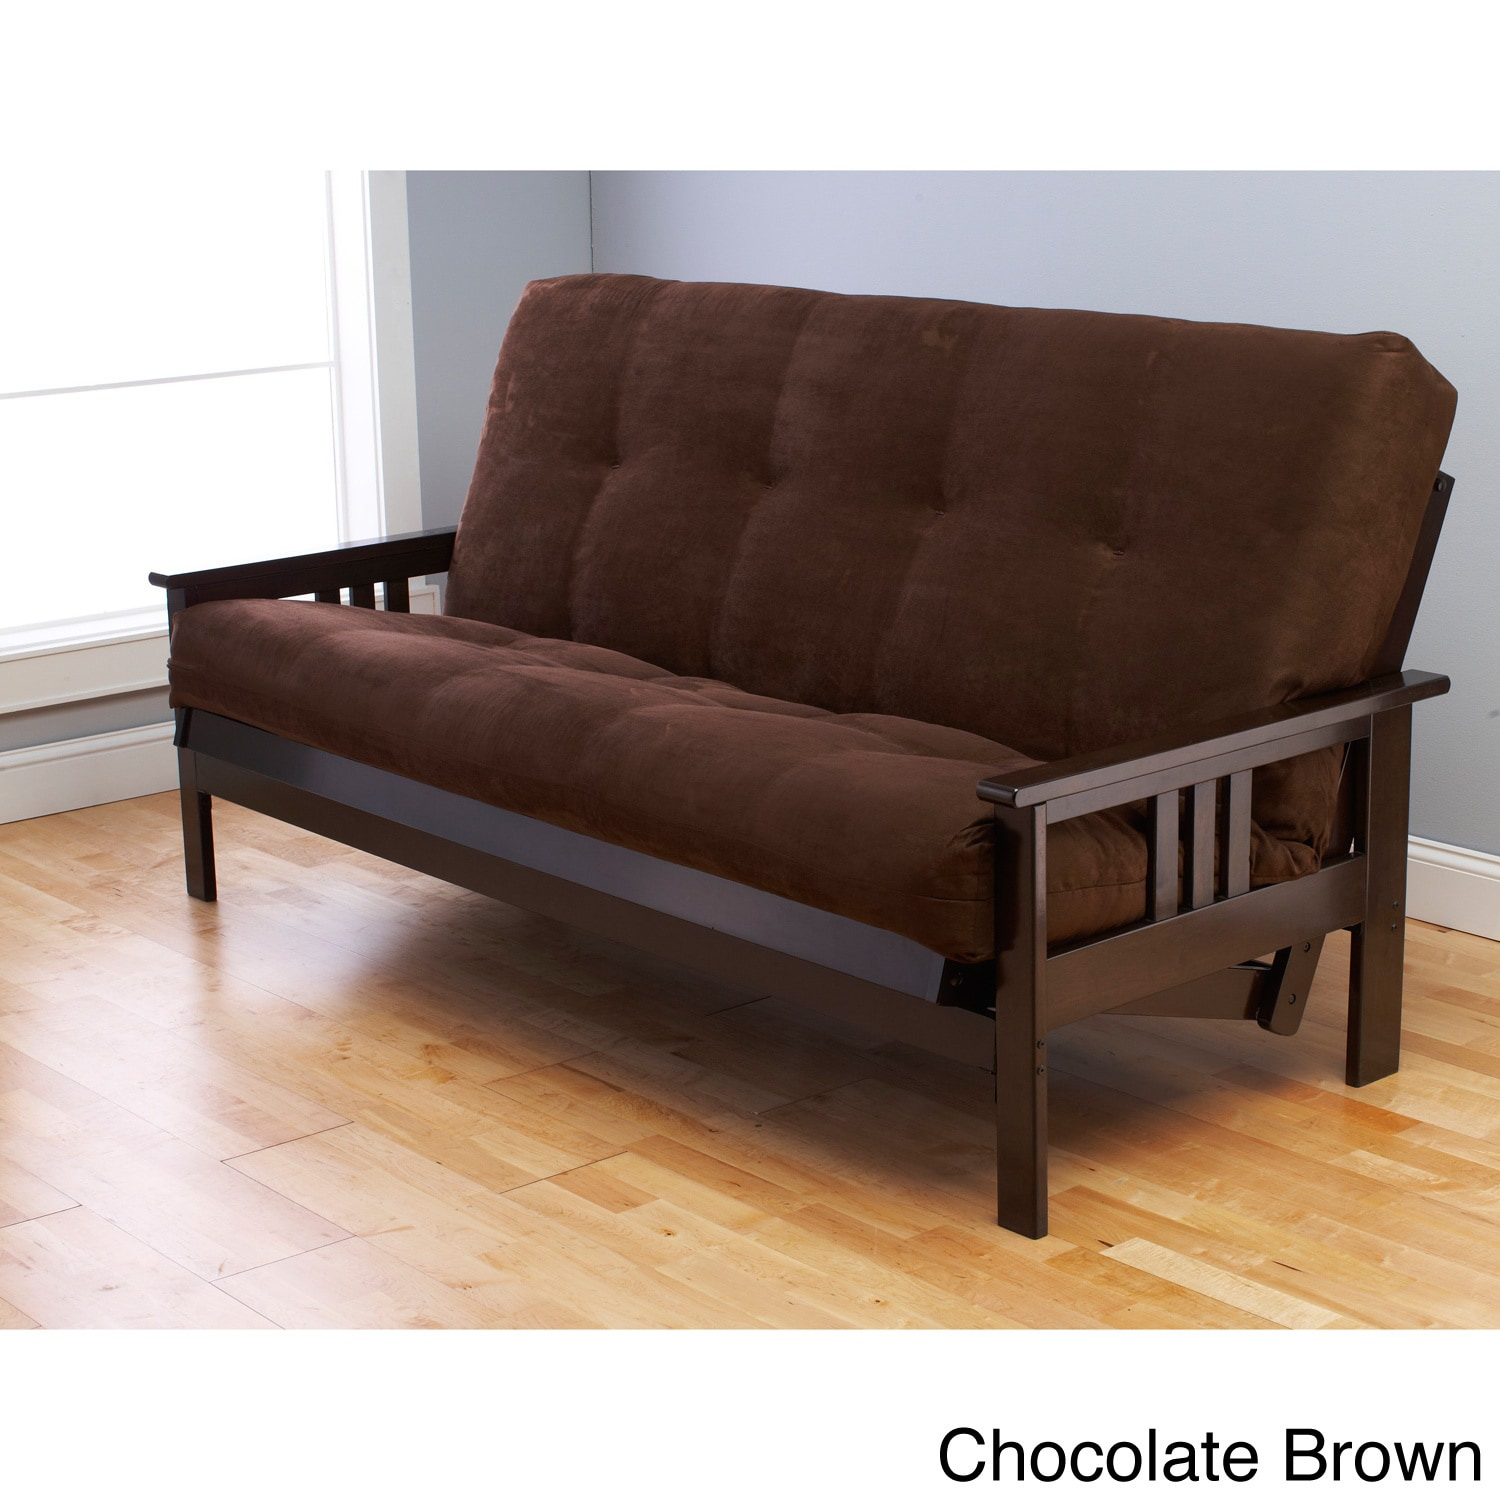 futons frames and chocolate planet frame more finish seattle futon nad in